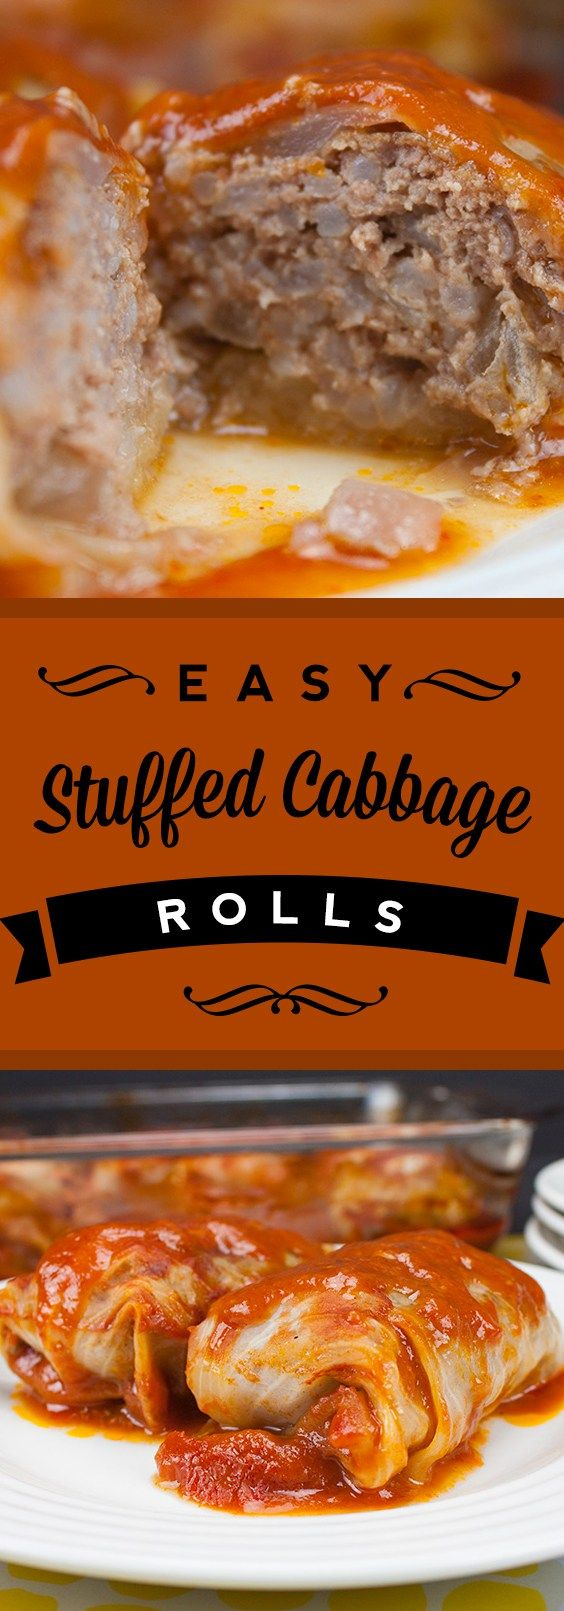 Stuffed Cabbage Rolls are a great comfort food recipe to have in your rotation. Meaty, saucy goodness in a neat little package.